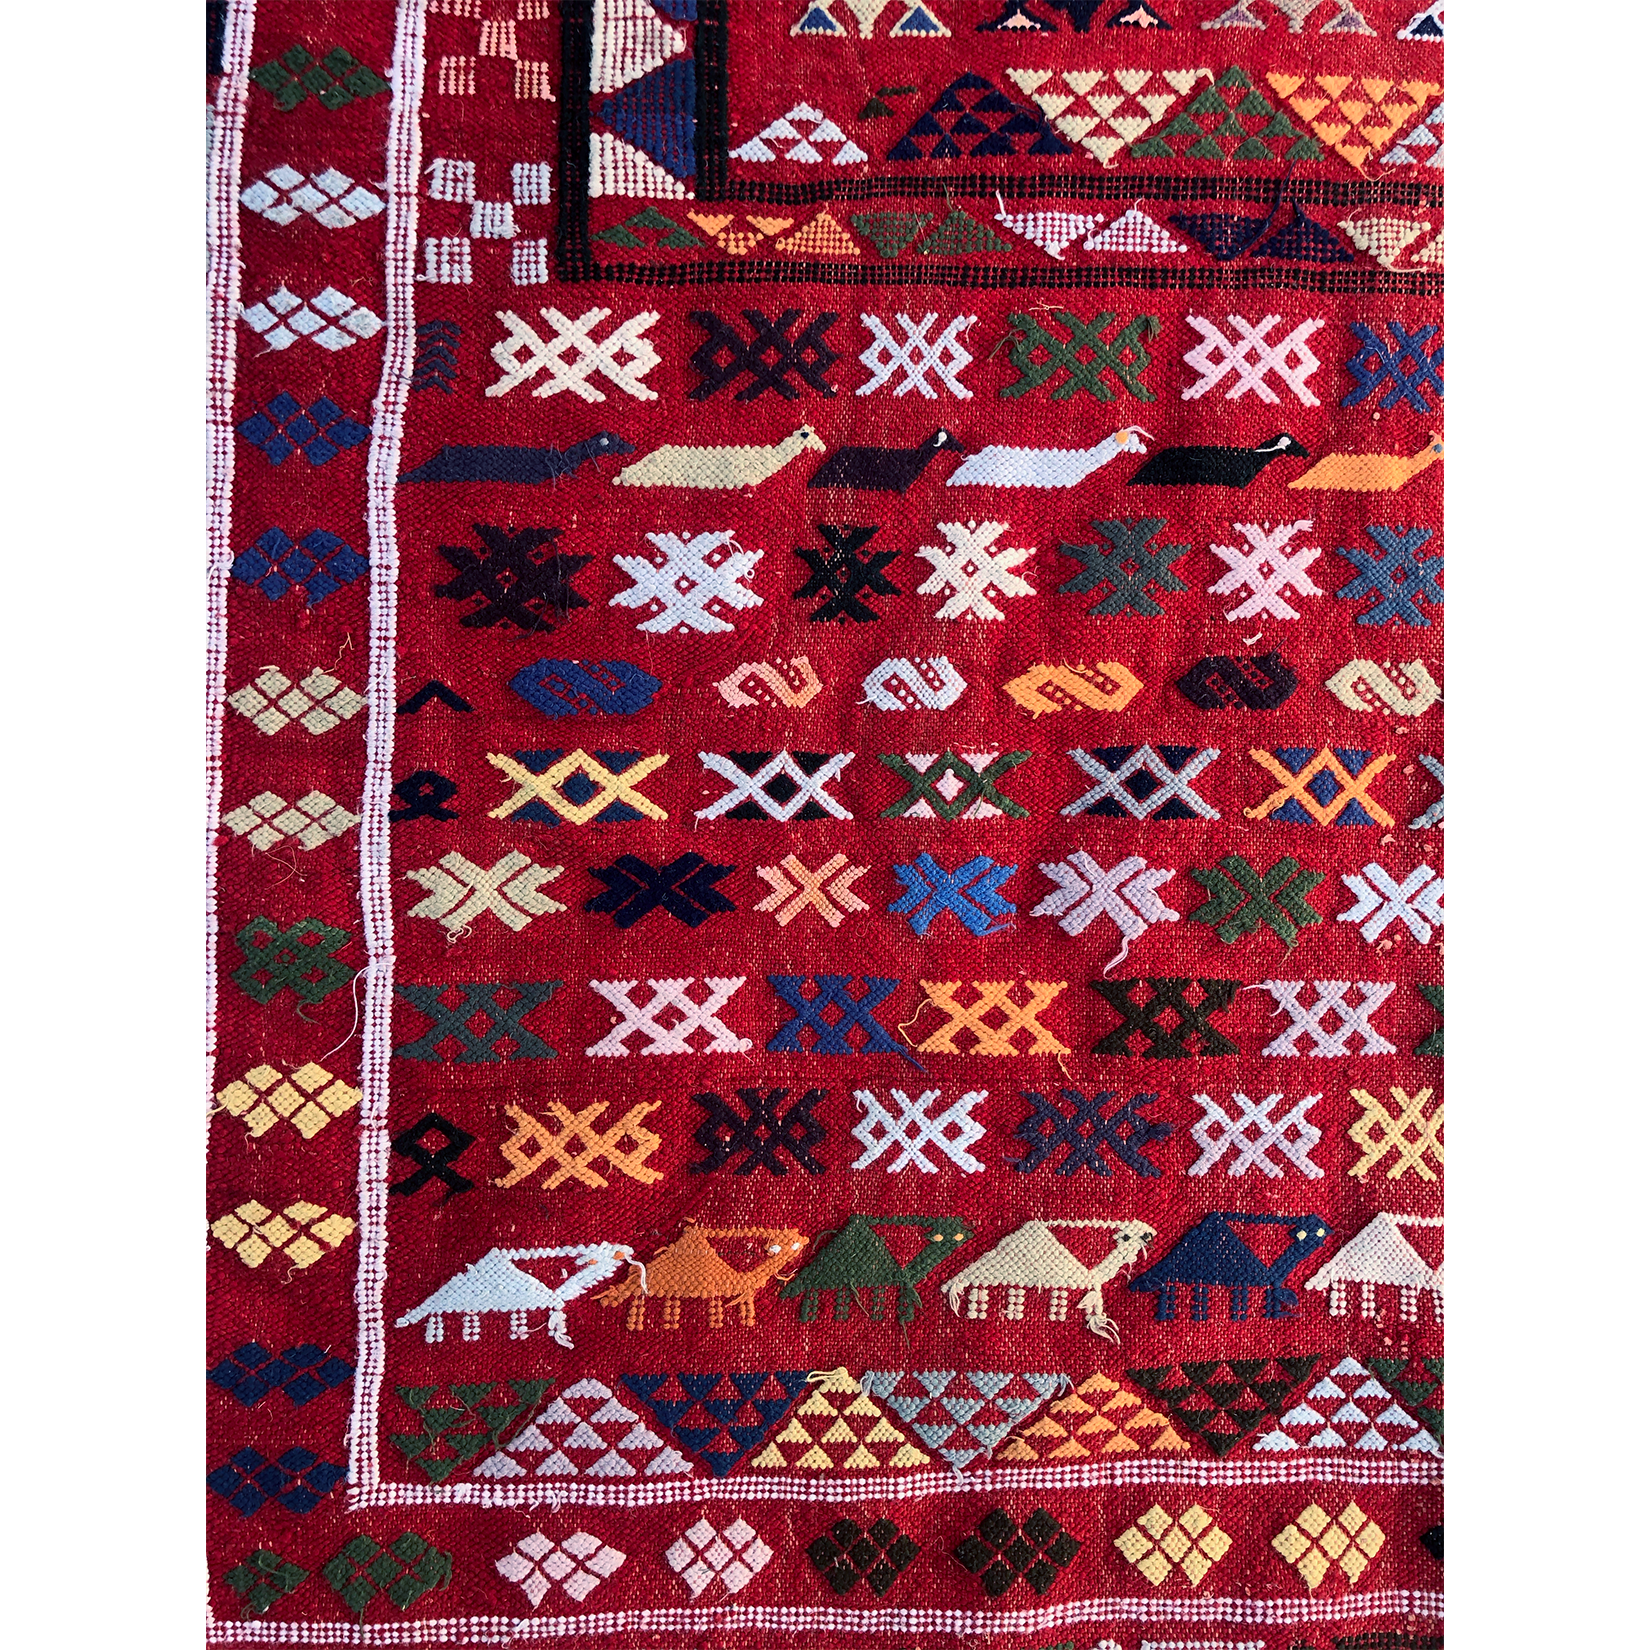 HIBA - Boujaad Moroccan Large Rug with Animals - Kantara | Moroccan Rugs